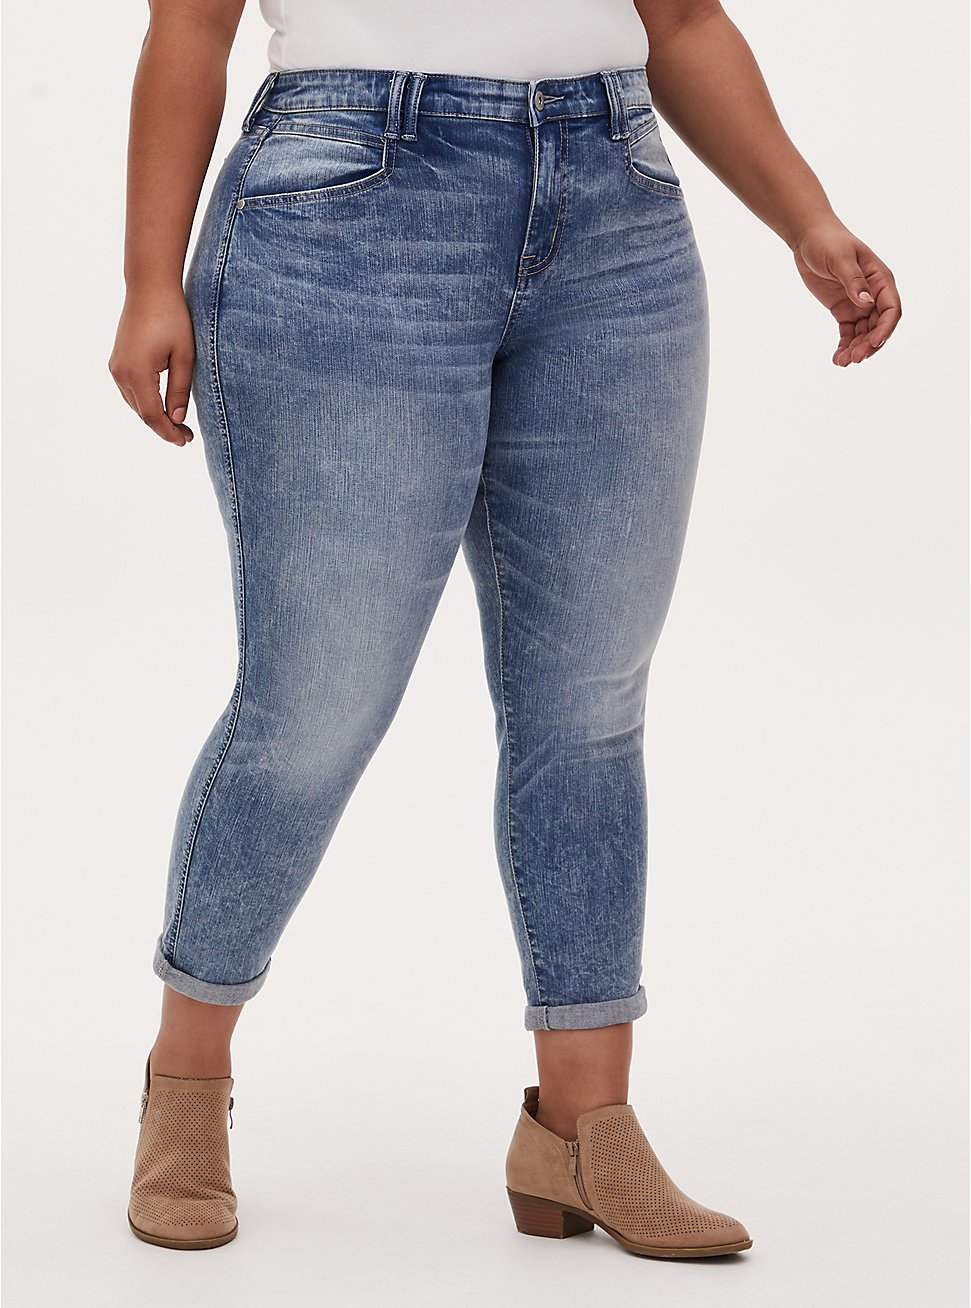 High Rise Boyfriend Straight Jean - Vintage Stretch Light Wash , BURNOUT, hi-res